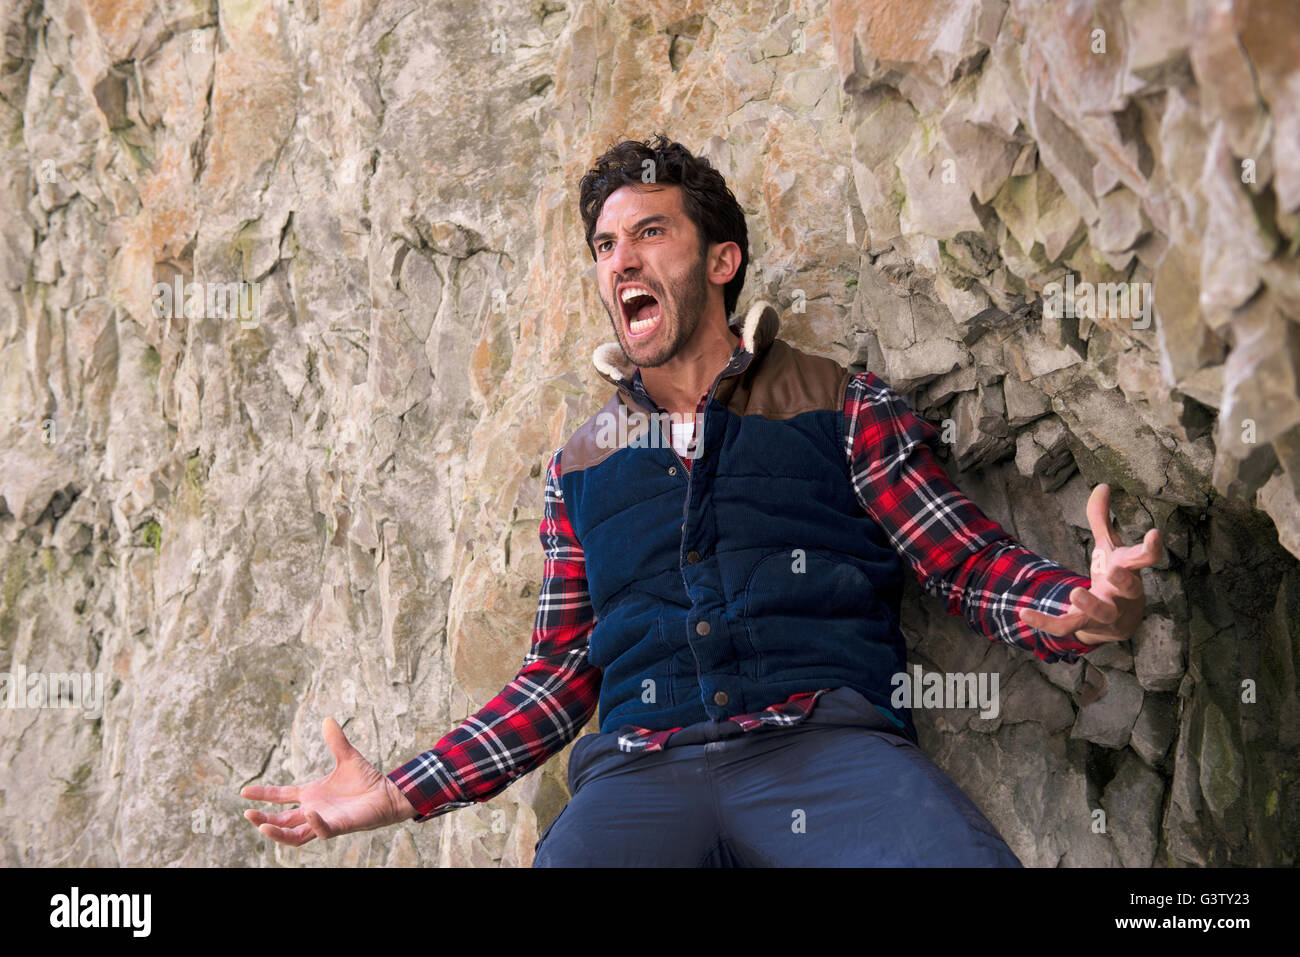 A climber with an angry expression standing on a ledge in rugged terrain. - Stock Image